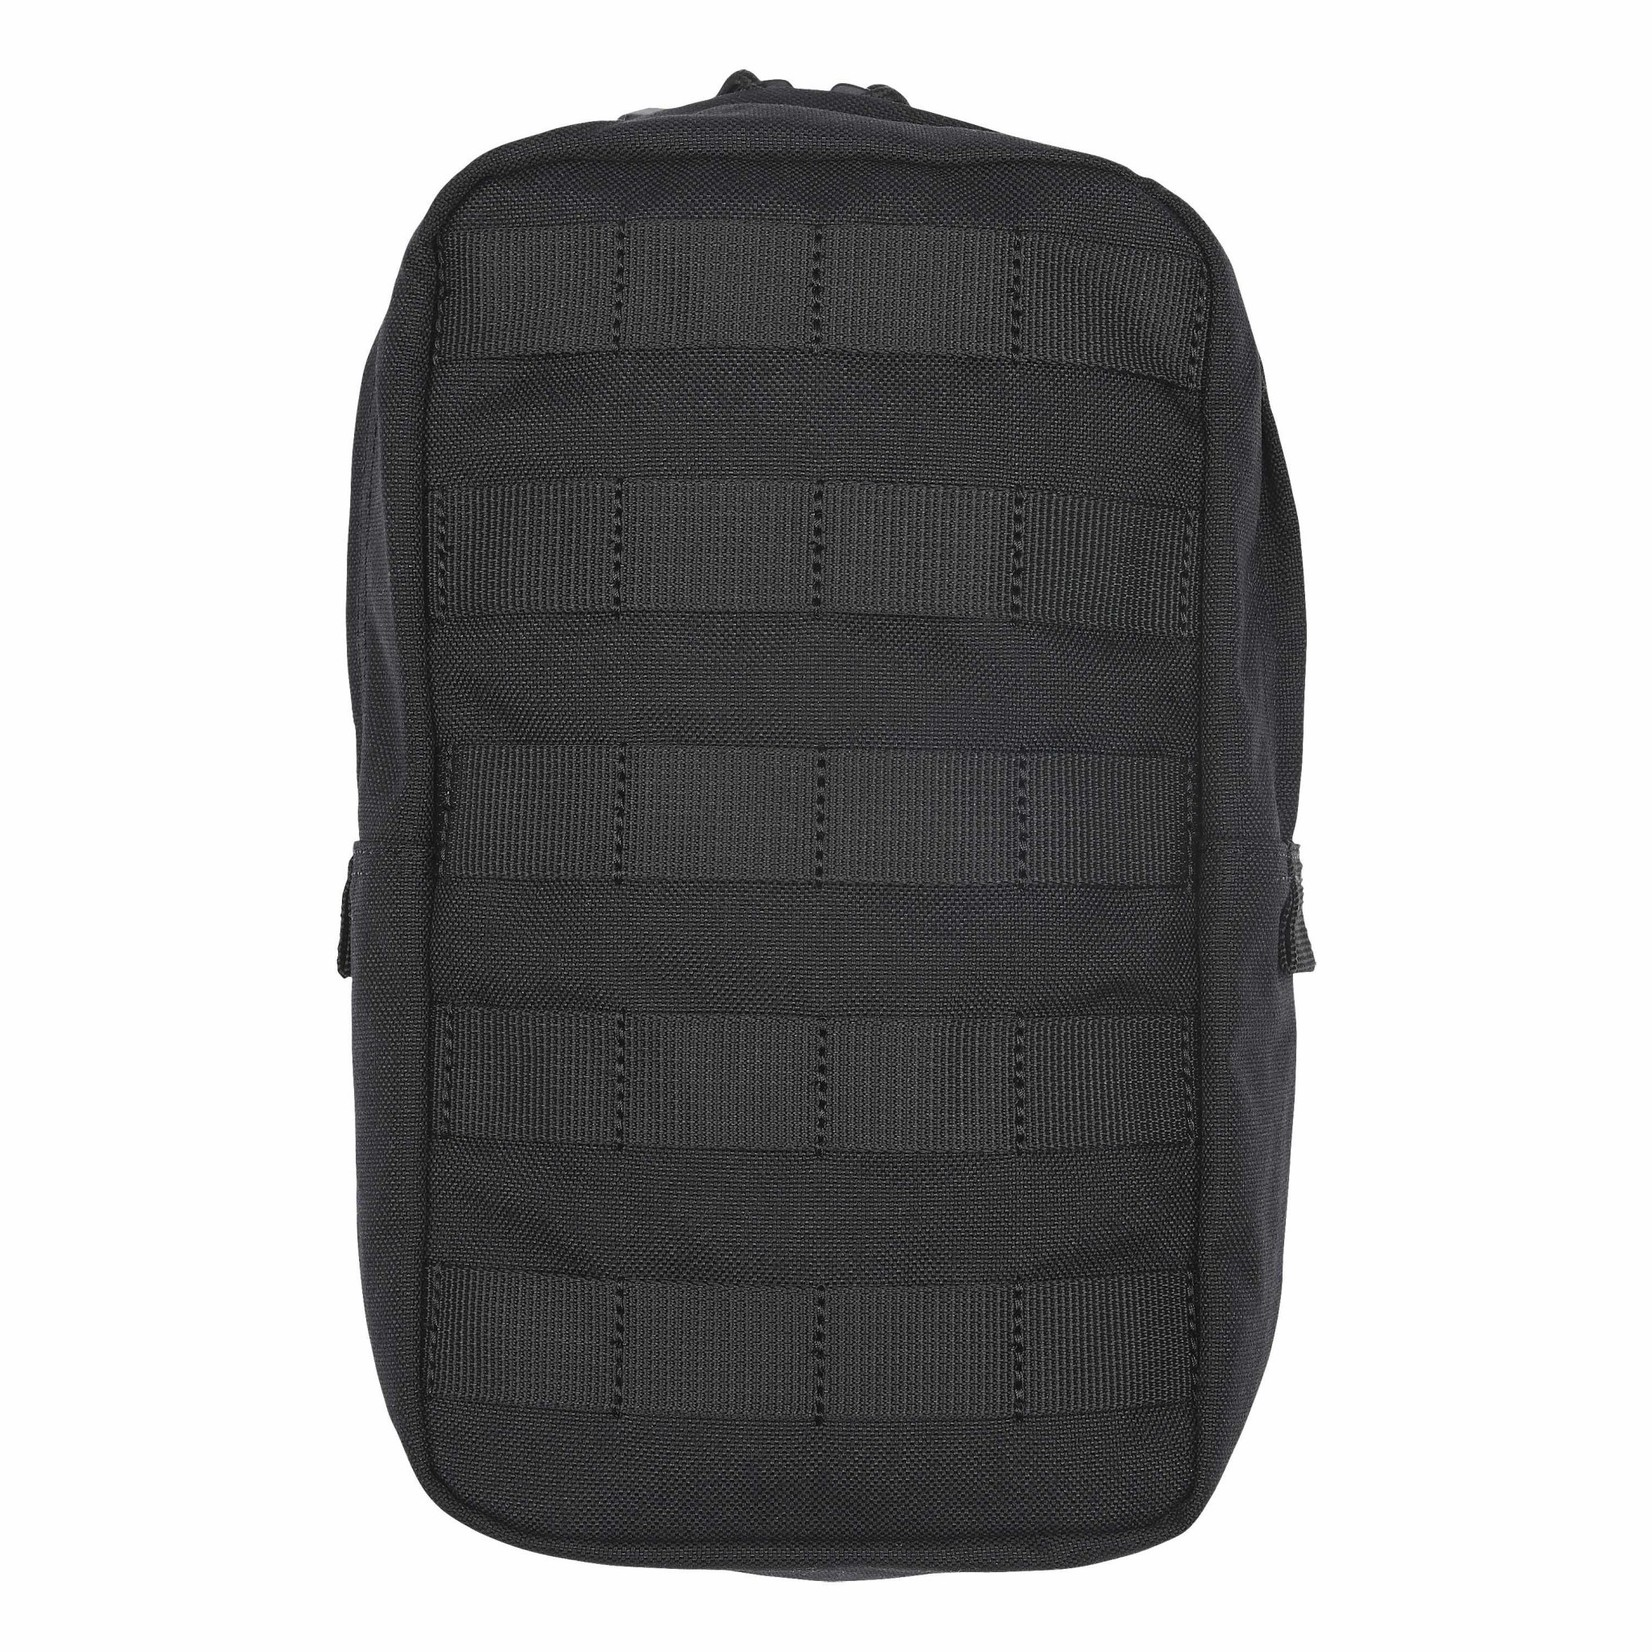 5.11 Tactical 5.11 6.10 Vertical Pouch